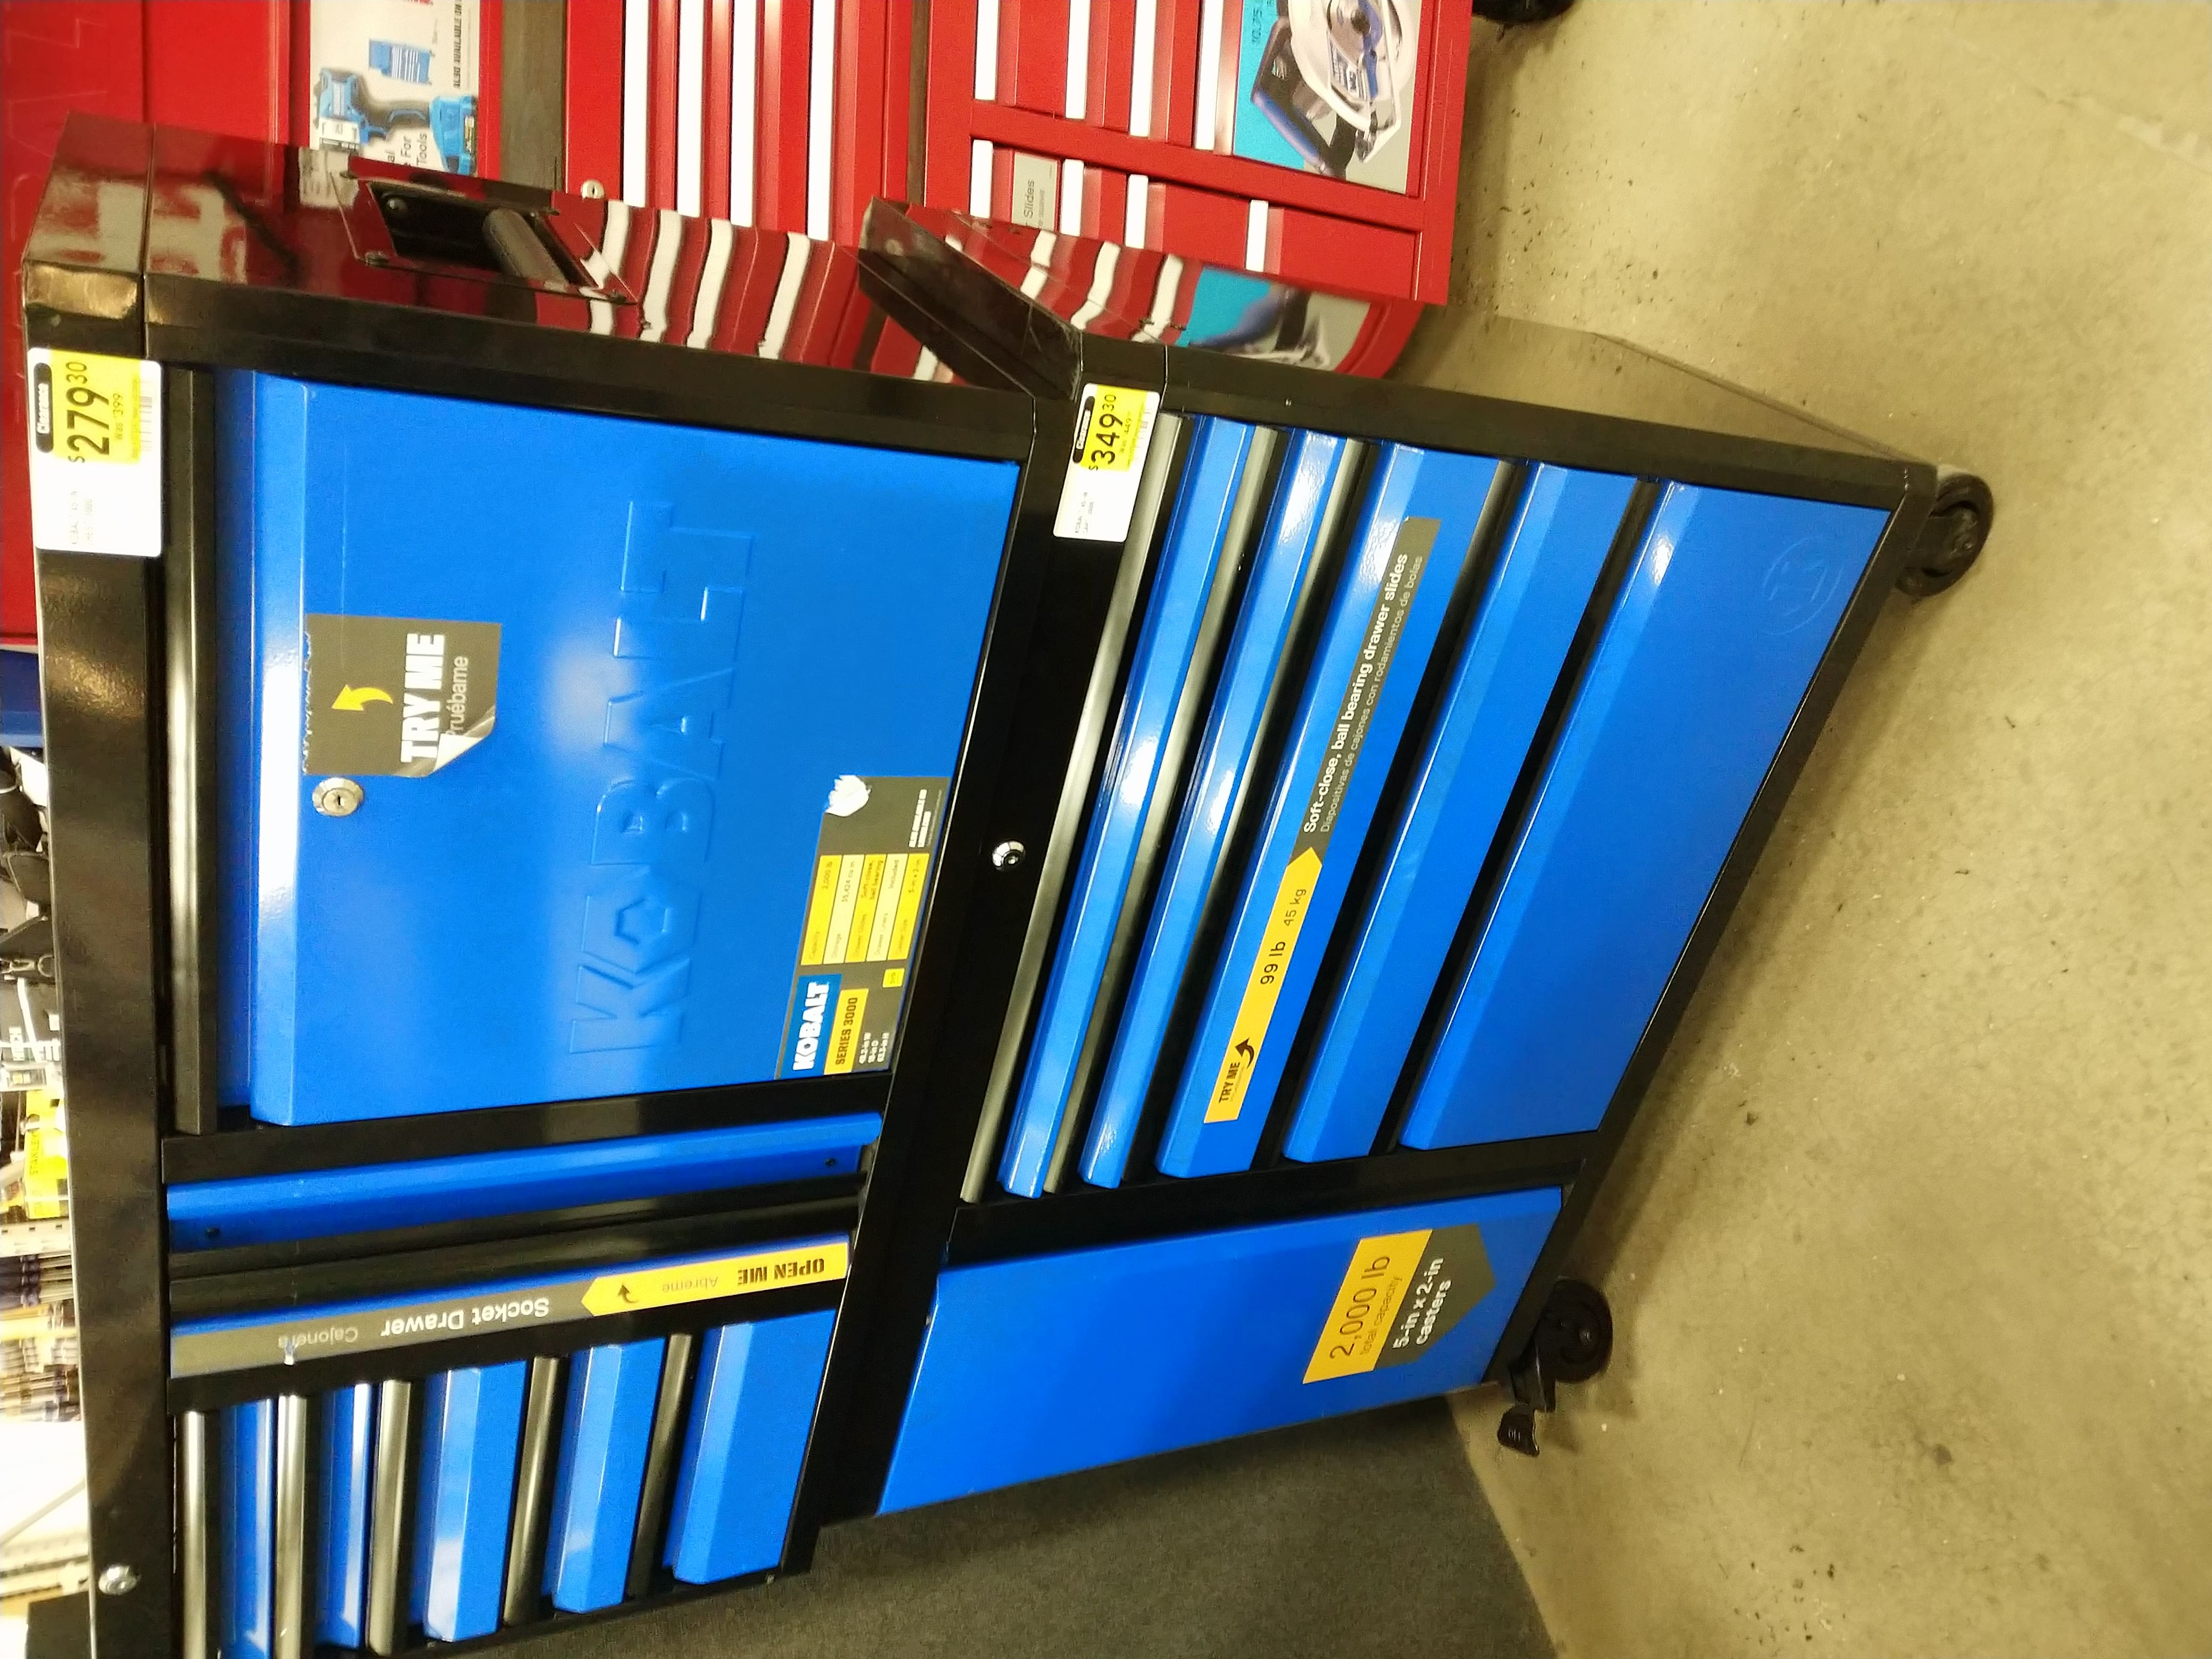 Awesome Kobalt 3000 Tool Cabinet 349 30 And Tool Chest 279 30 Theyellowbook Wood Chair Design Ideas Theyellowbookinfo